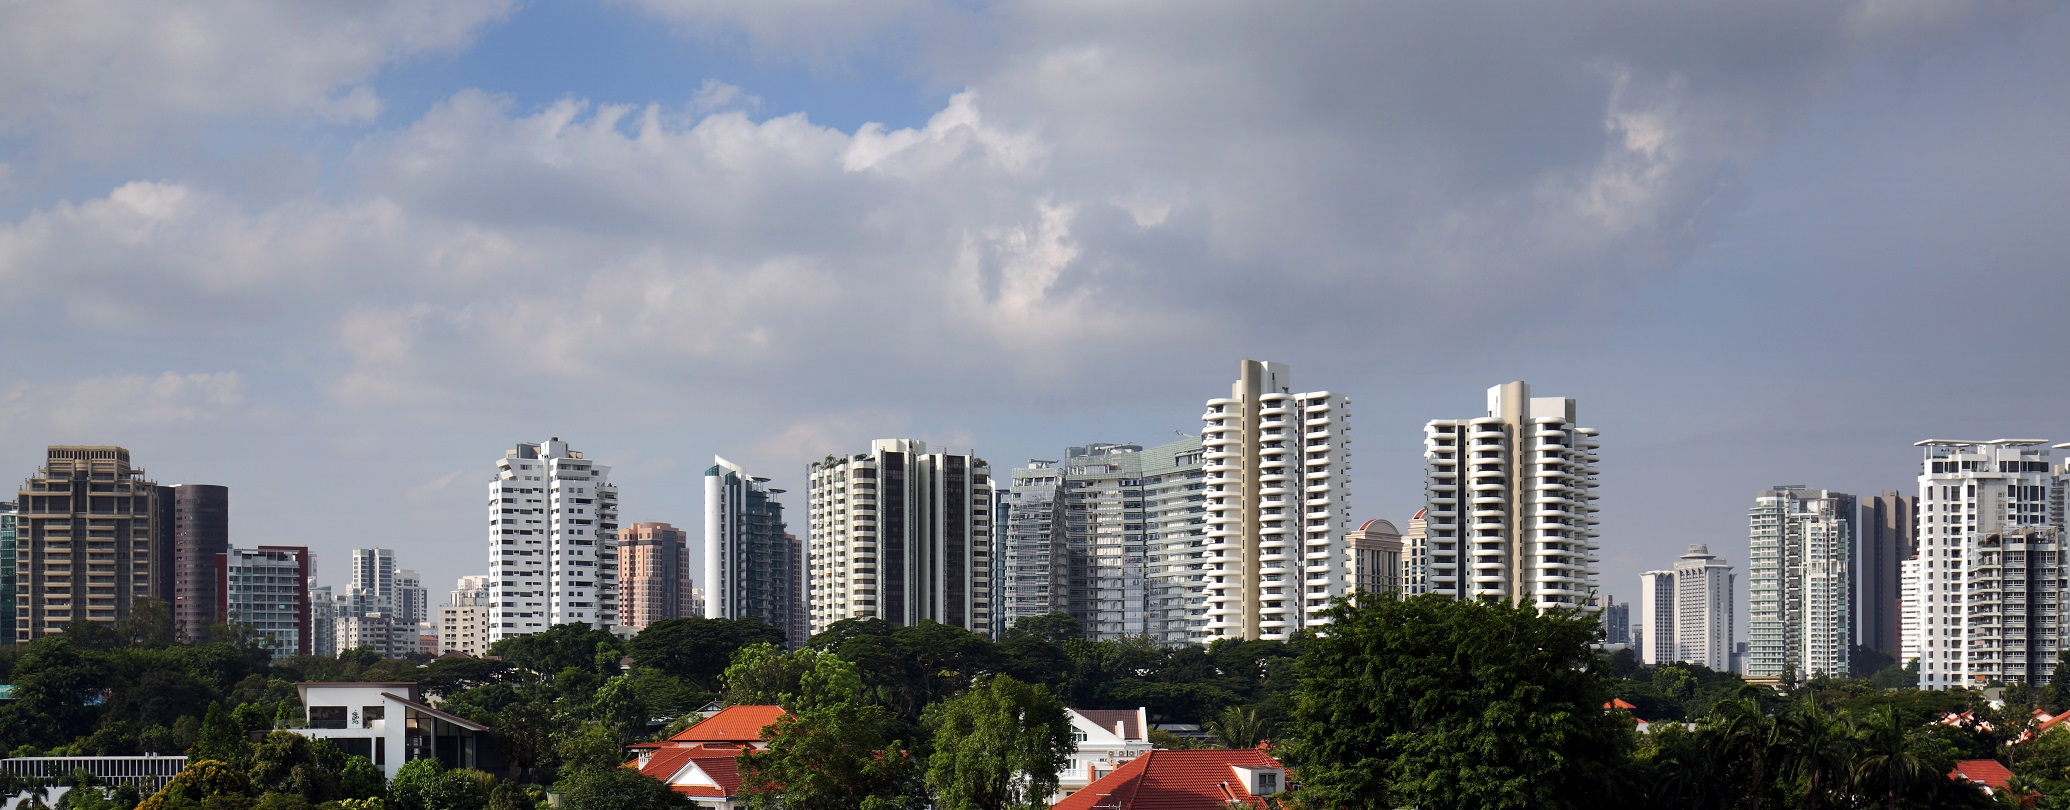 Residential listings continued to account for the lion's share of total auction listings in 2019 (Photo: Samuel Isaac Chua/EdgeProp Singapore)